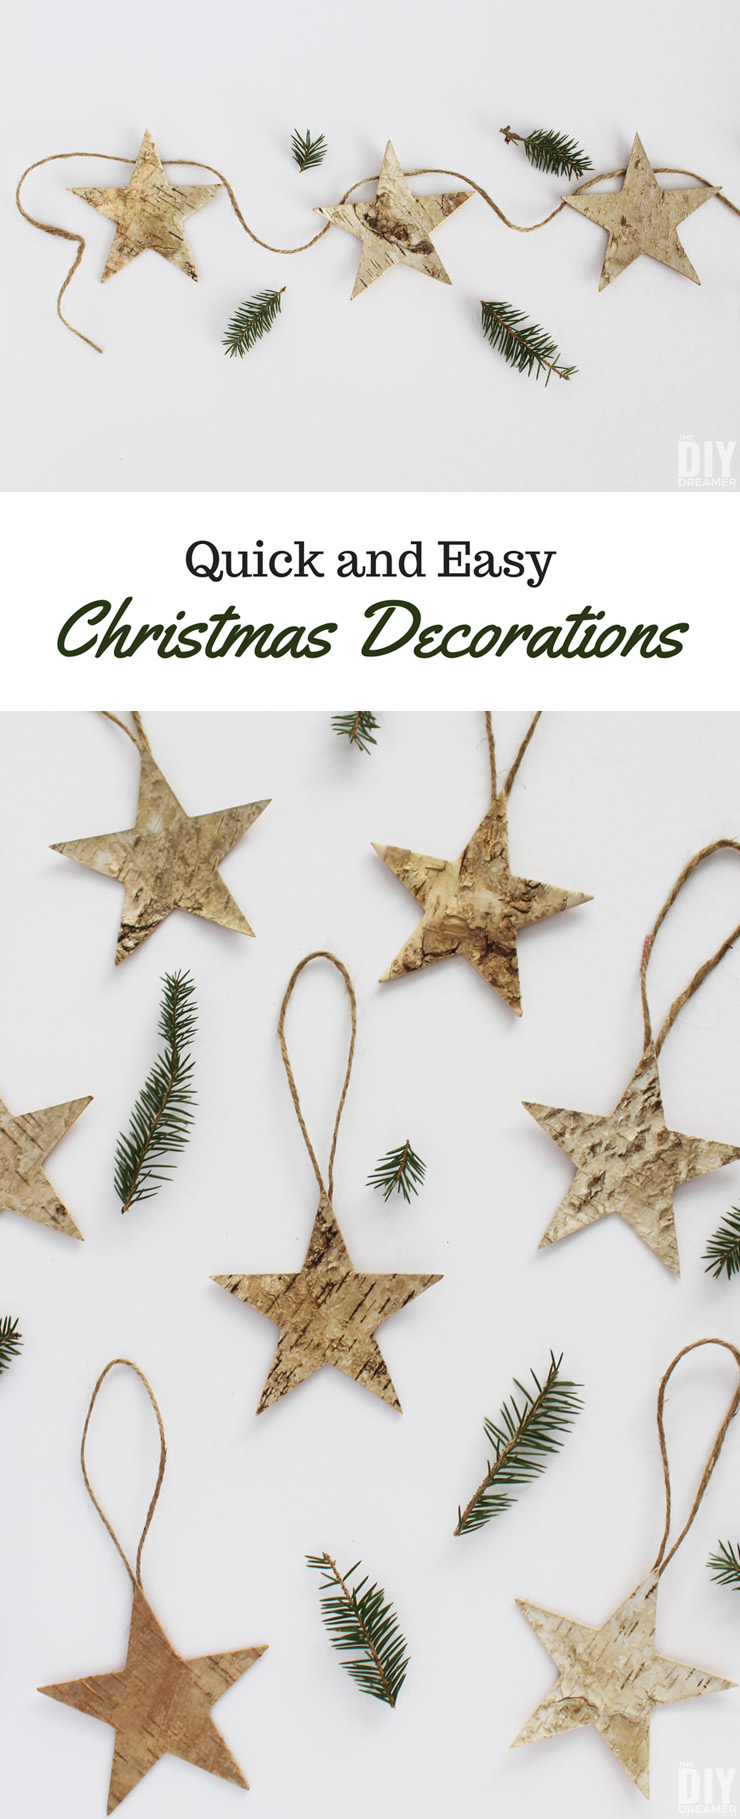 quick and easy christmas decorations that you can make this holiday season perfect for a